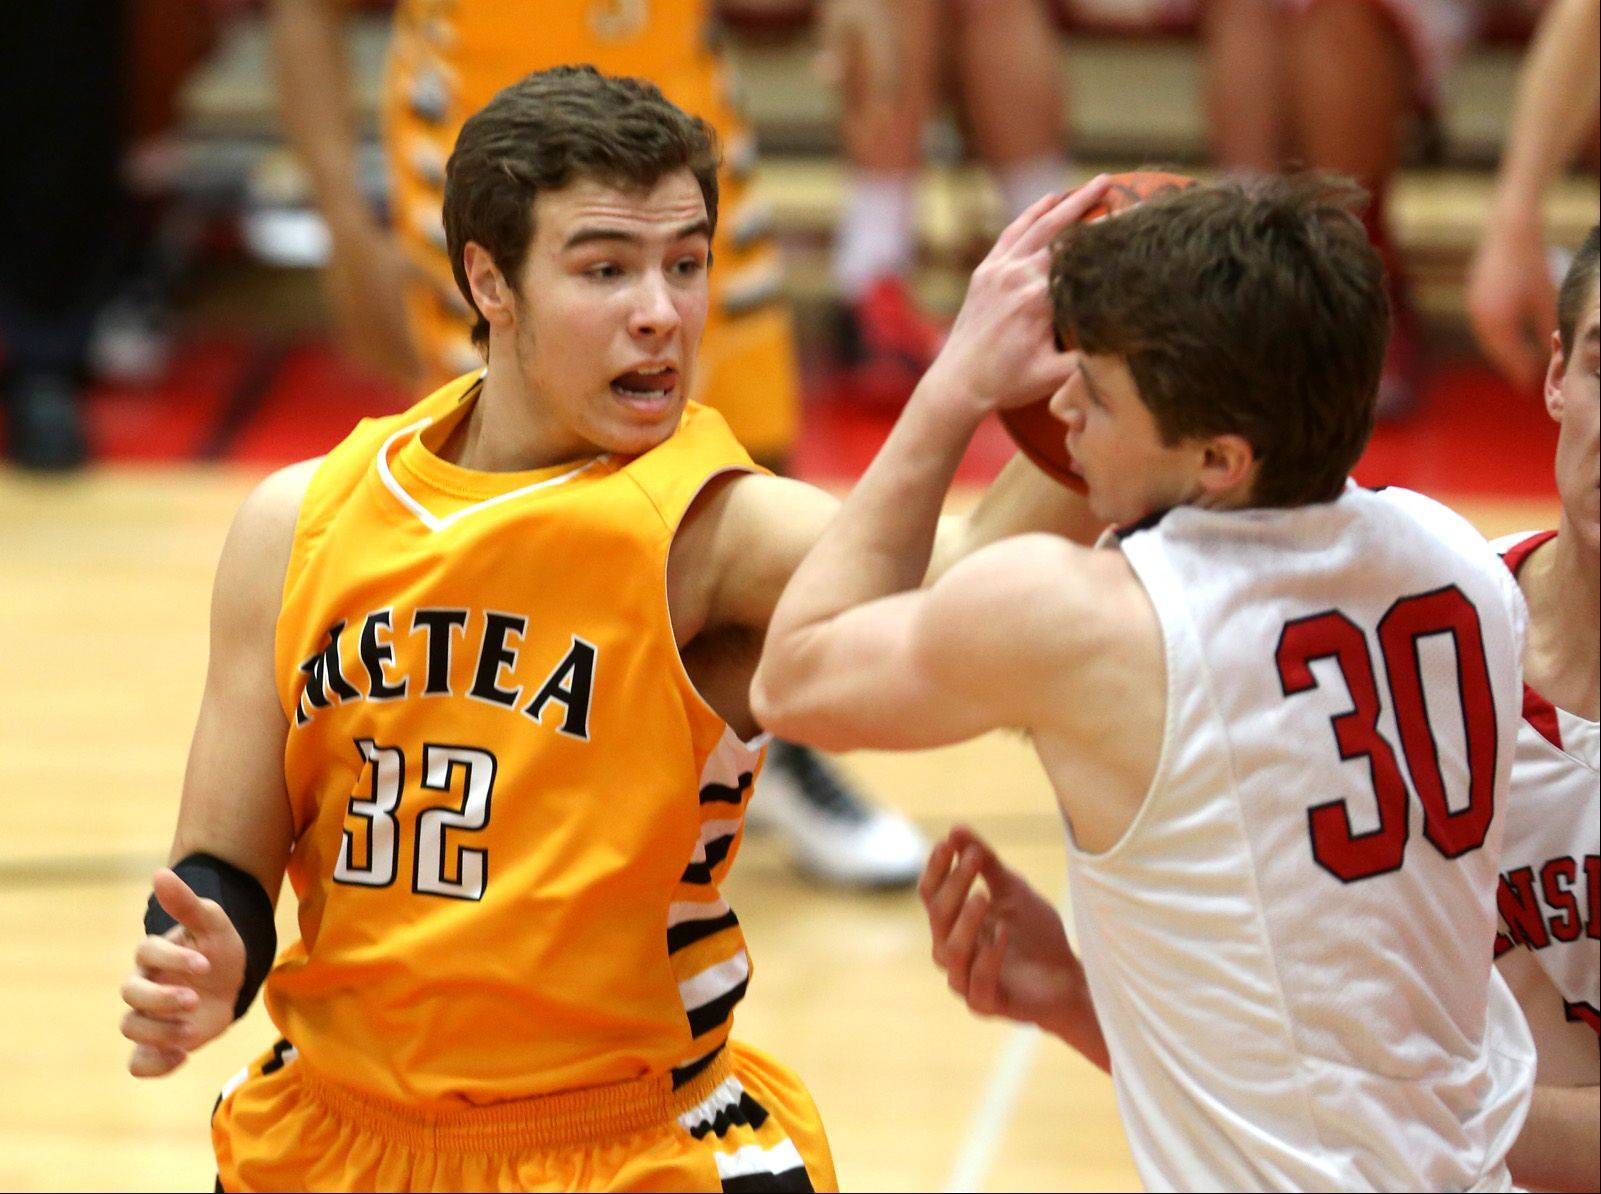 Hinsdale Central snaps Metea Valley's streak